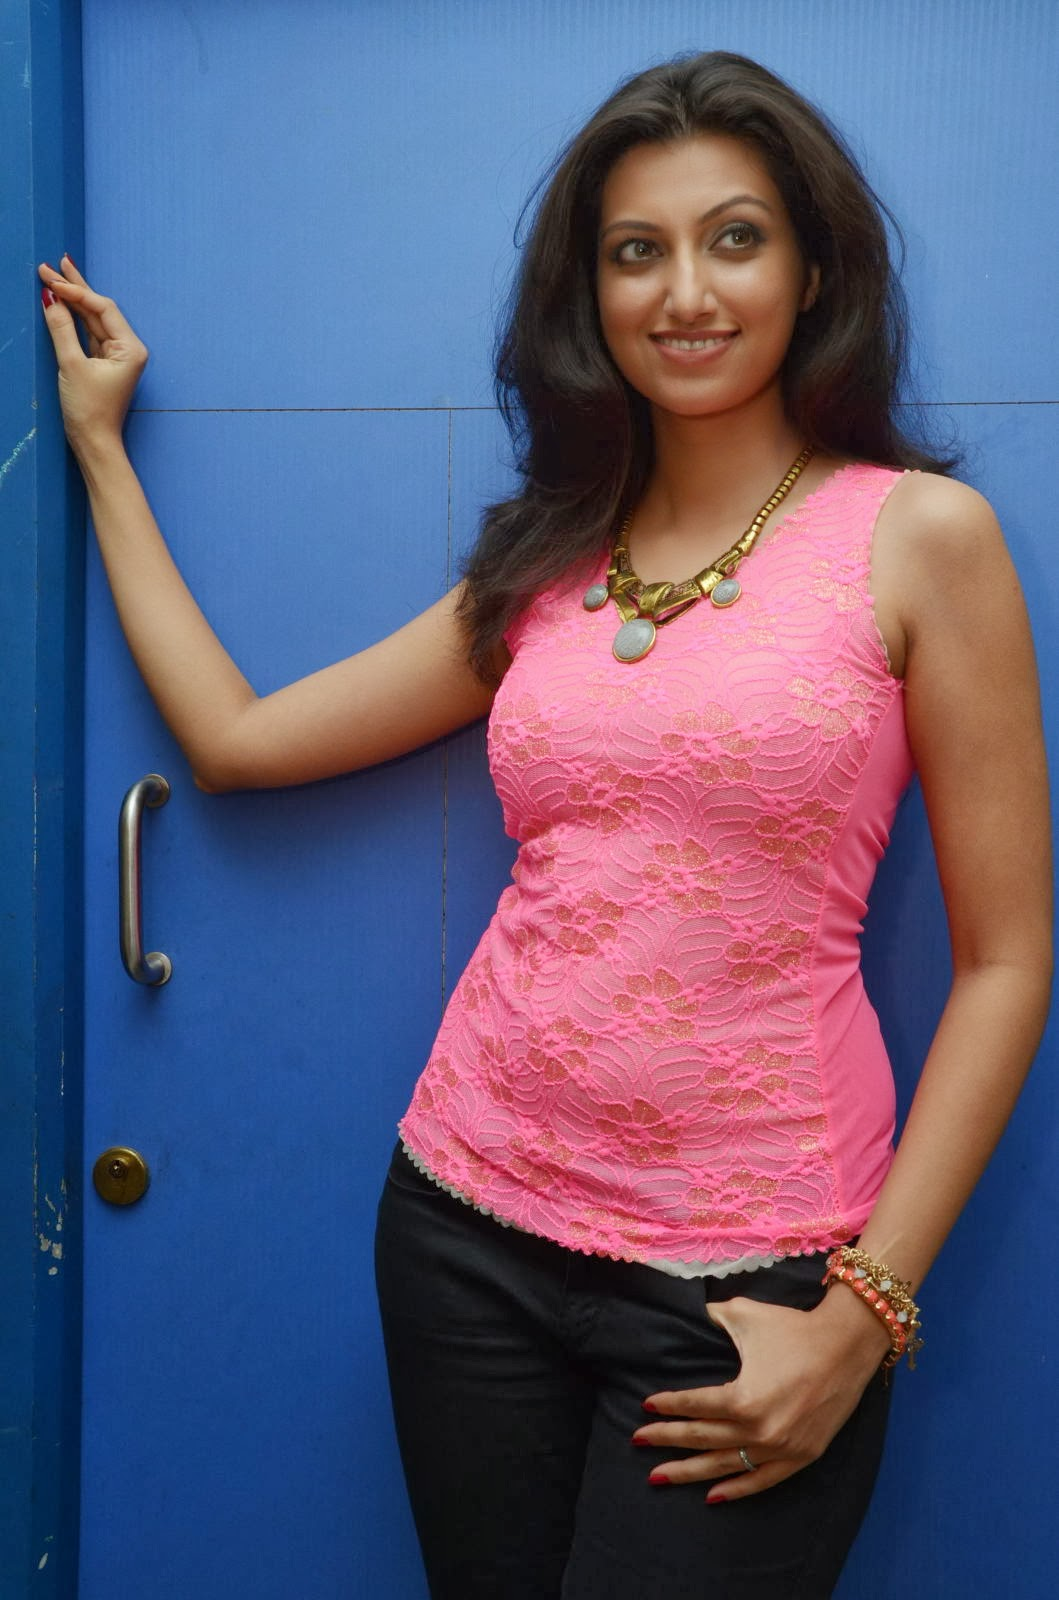 Sexy and curvy Hamsa nandini latest photo gallery in pink top Bollywood, Tollywood, loving, sparkling, hot sexy actress image gallery